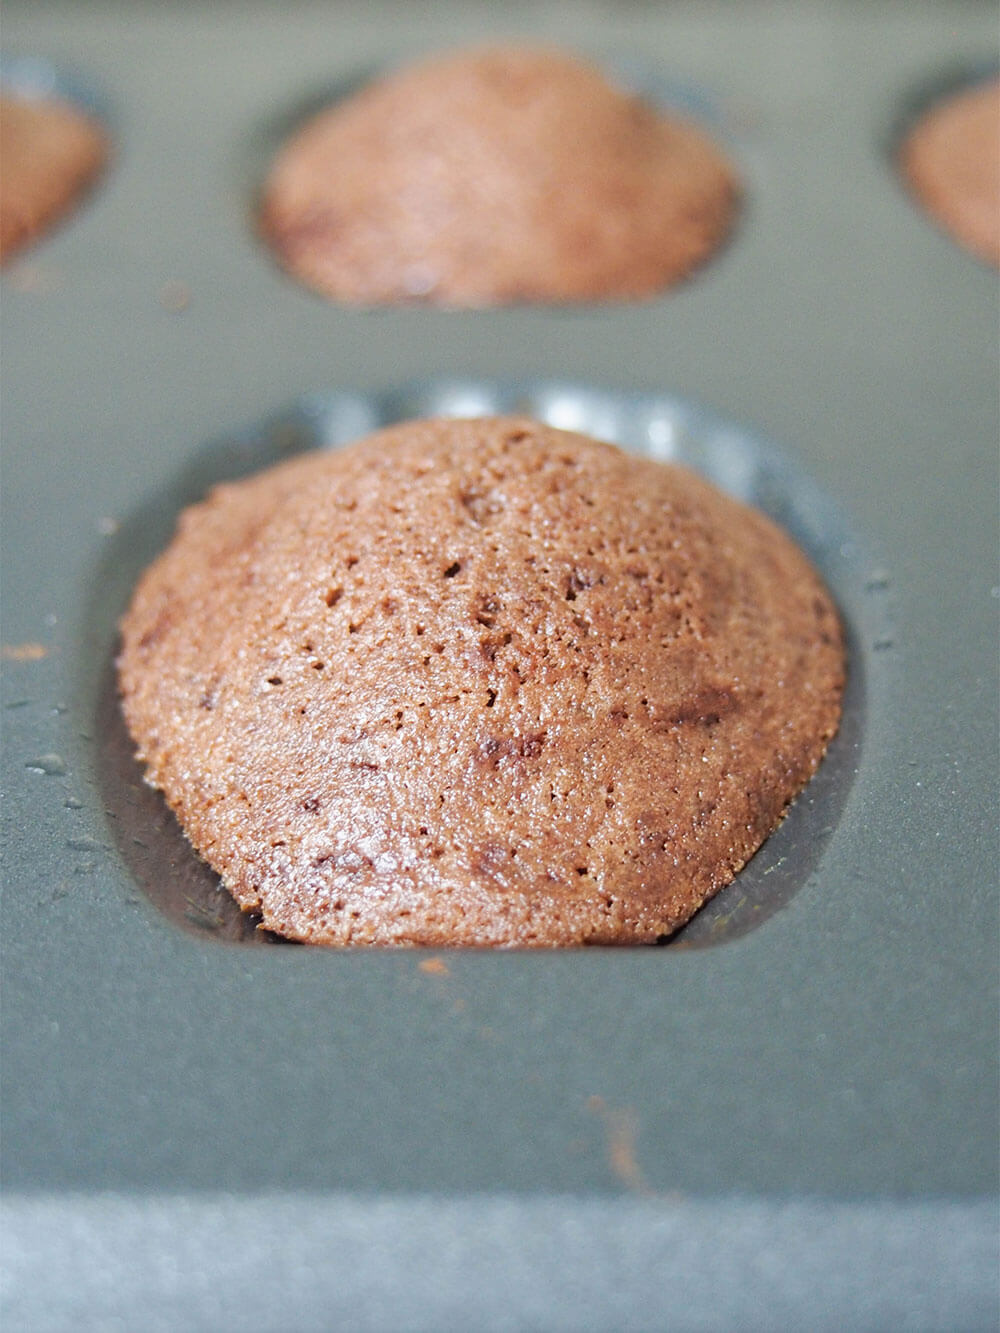 chocolate madeleines straight out the oven with clear 'hump'